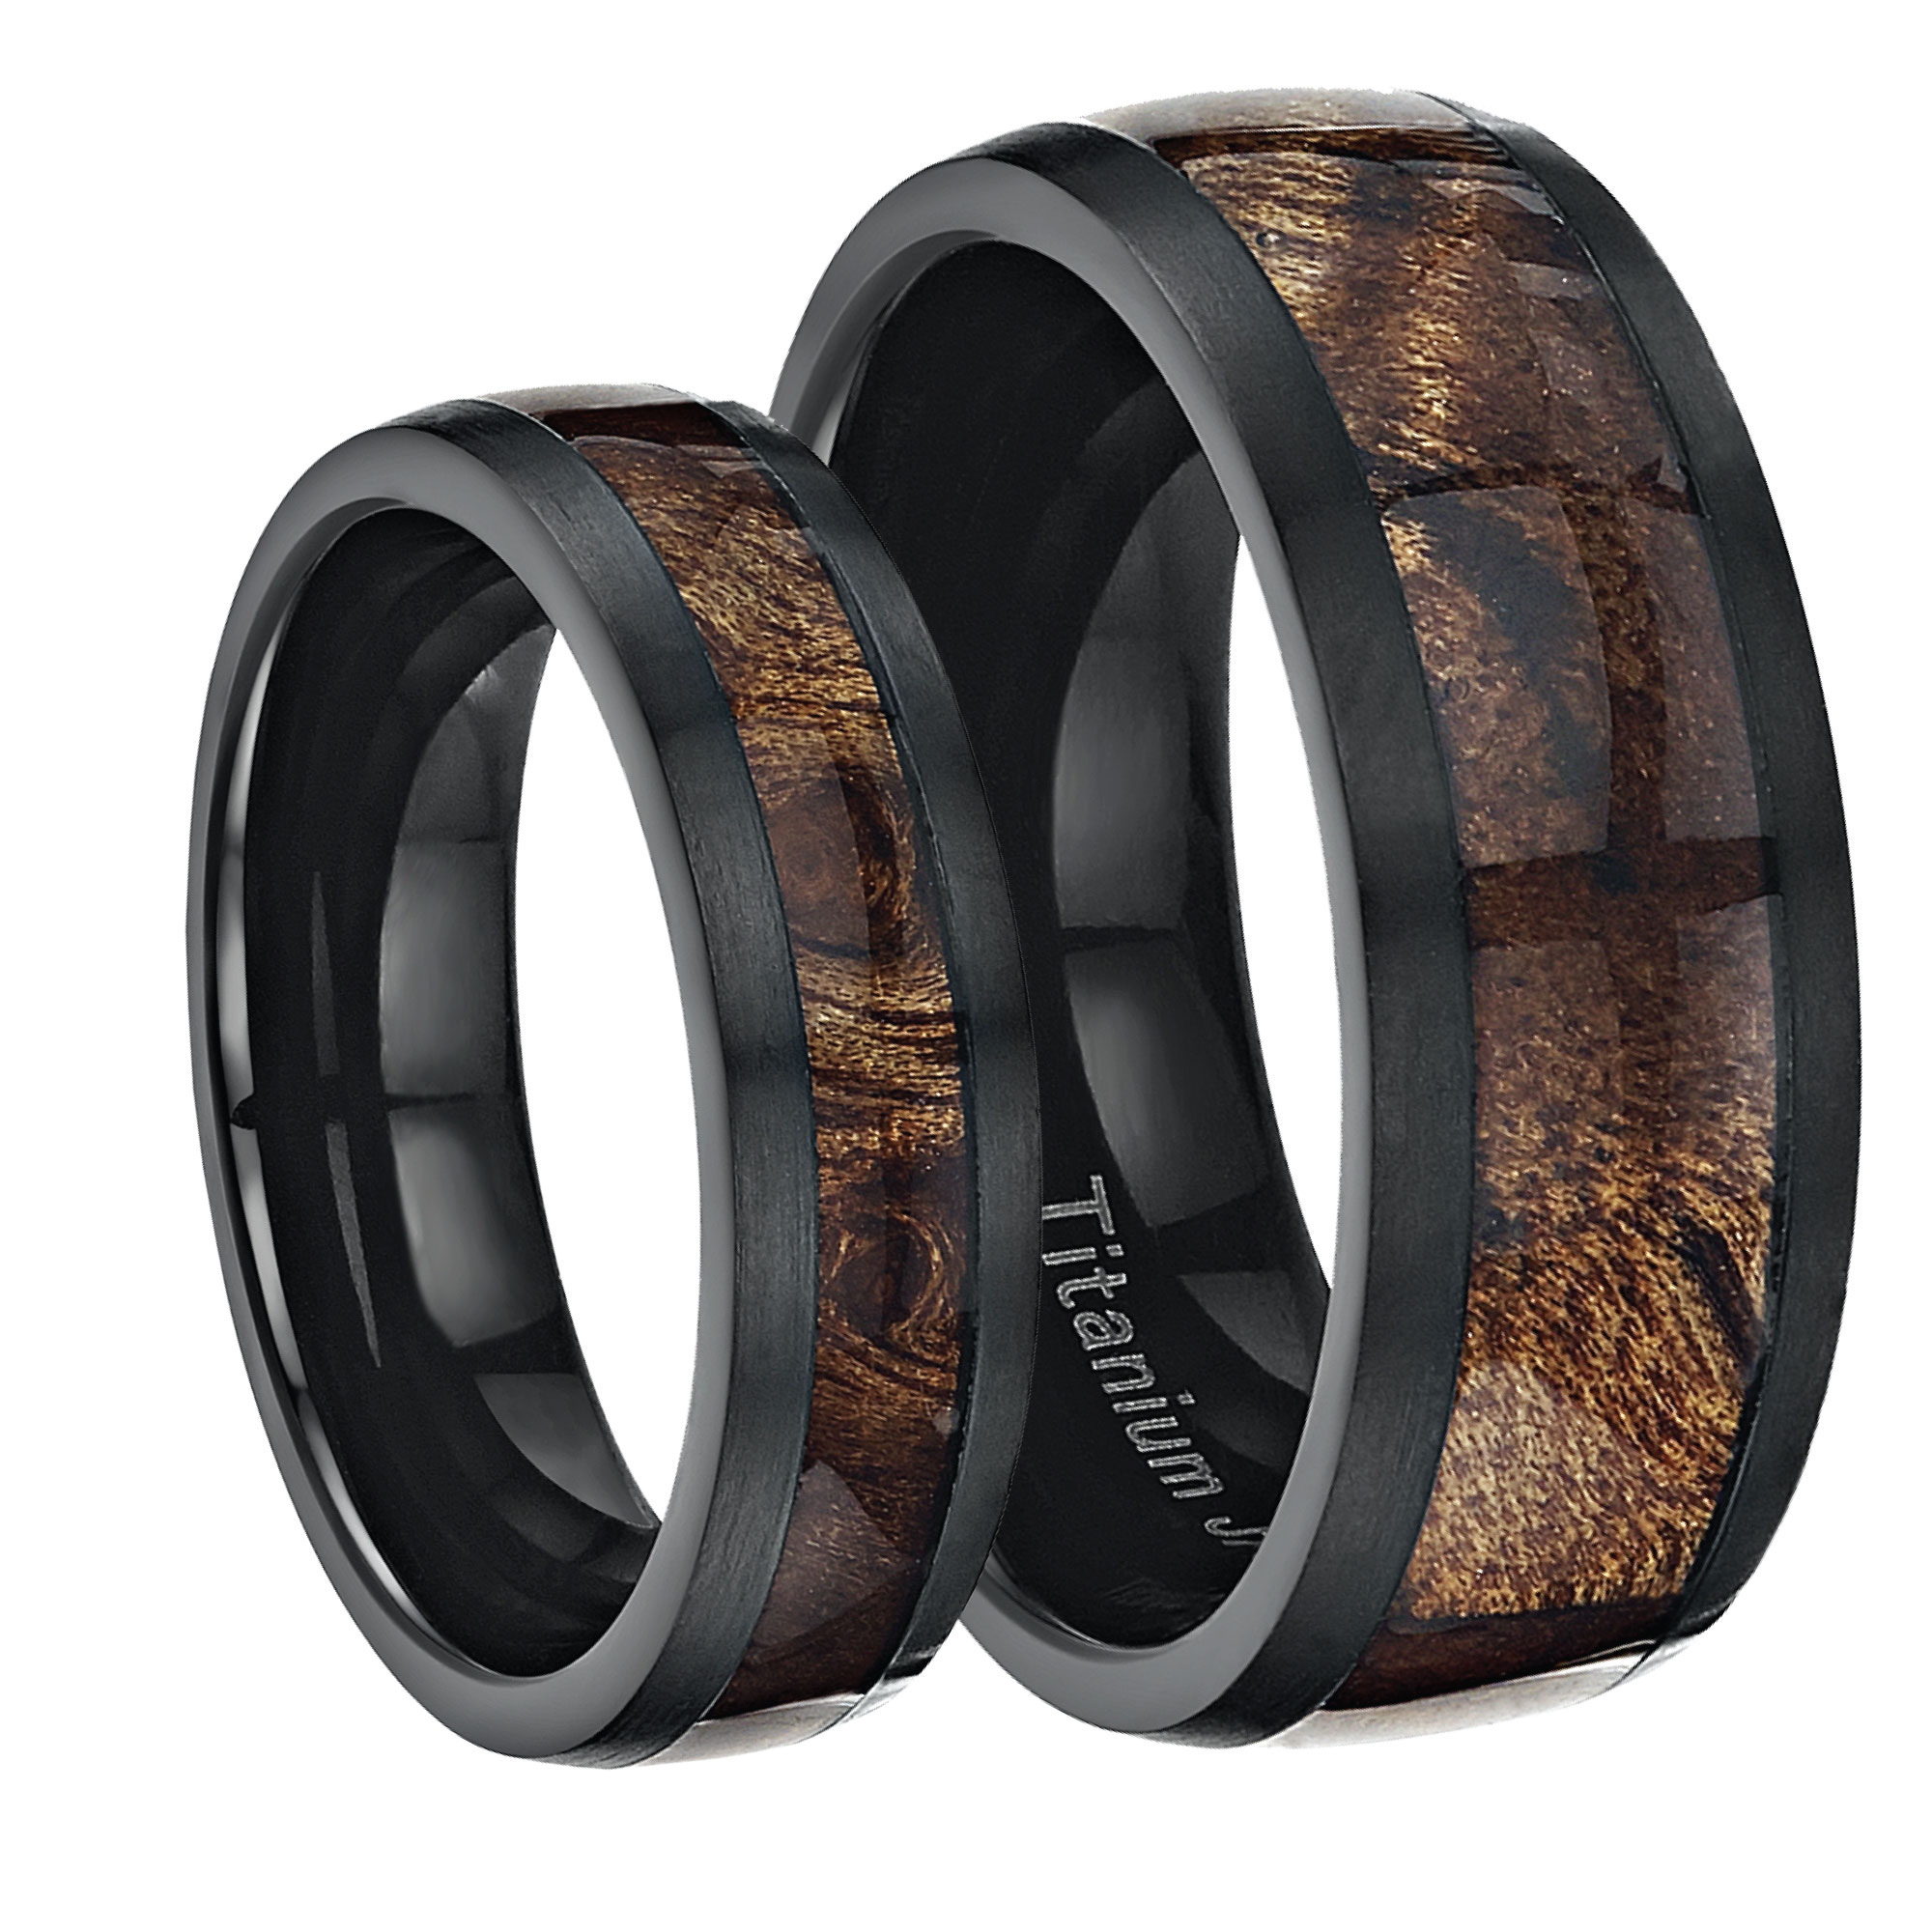 black bands triton tungsten s satin wedding band carbide rings ring men brushed